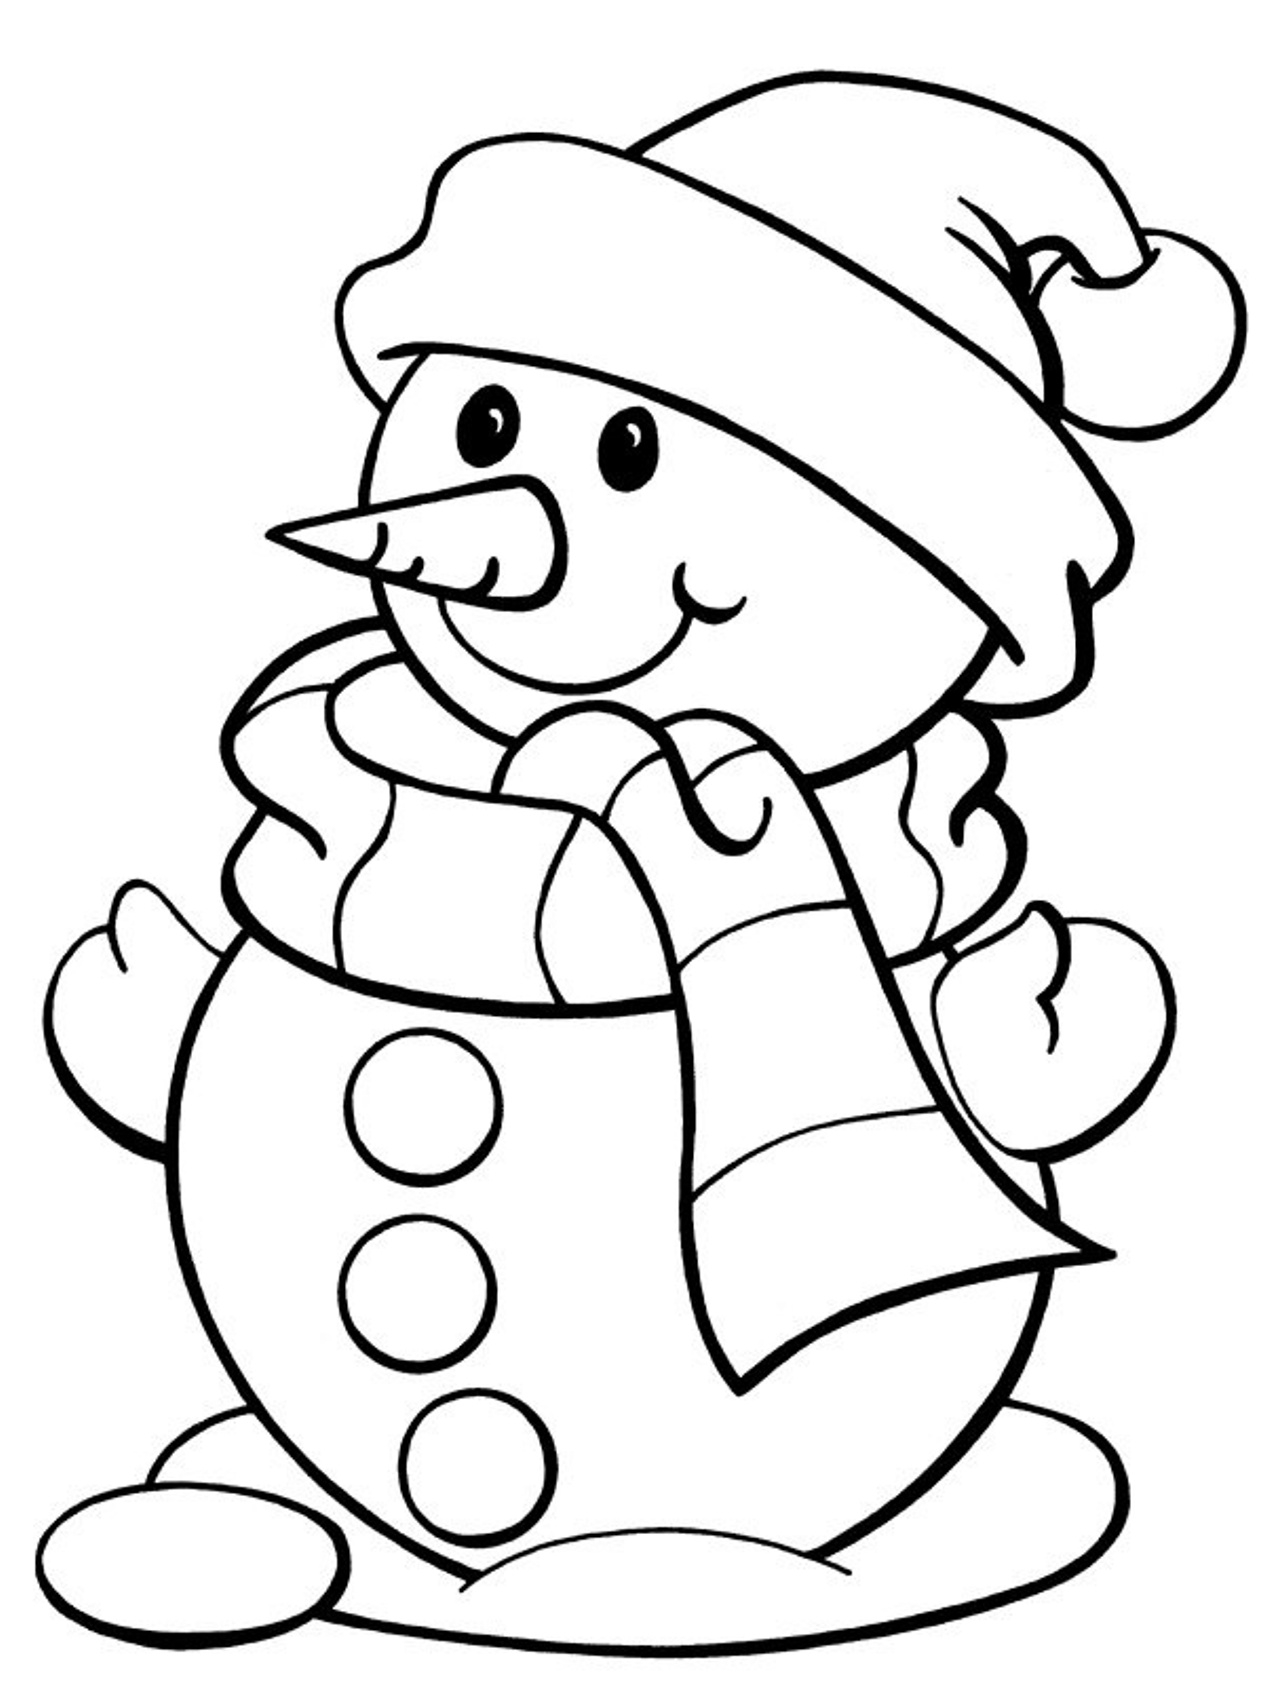 winter coloring winter season coloring pages crafts and worksheets for coloring winter